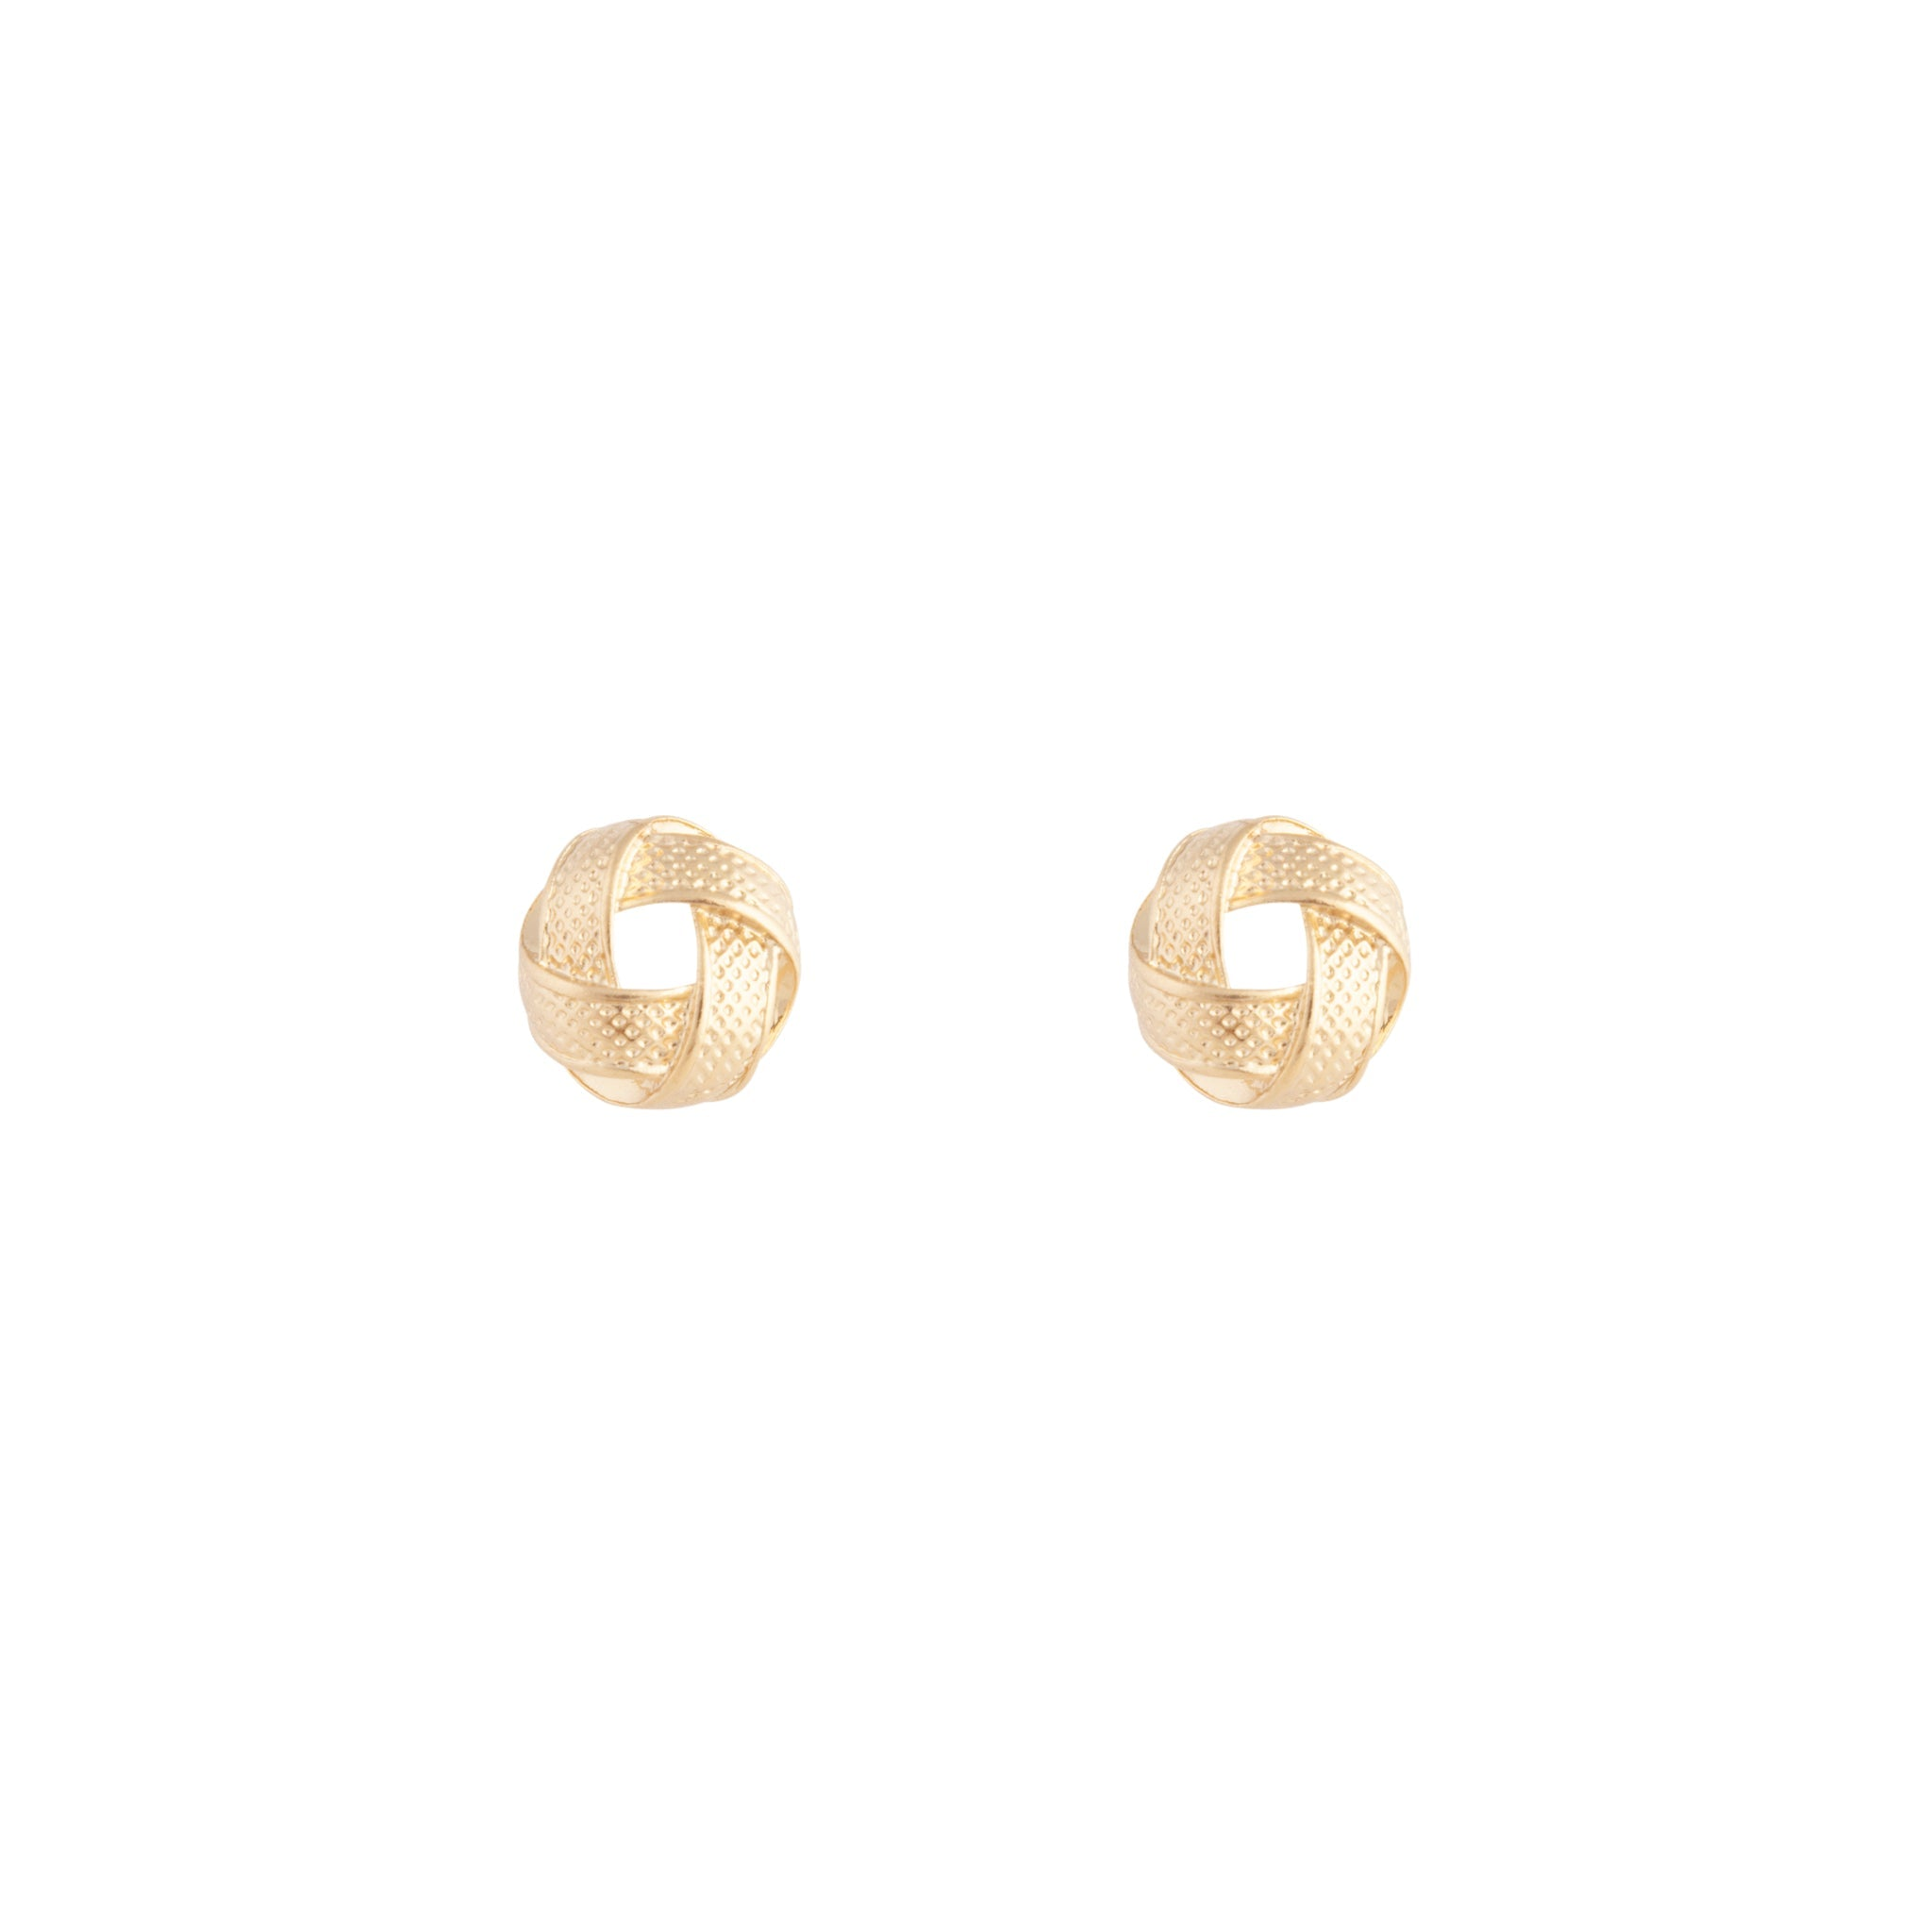 Gold Textured Knot Stud Earrings